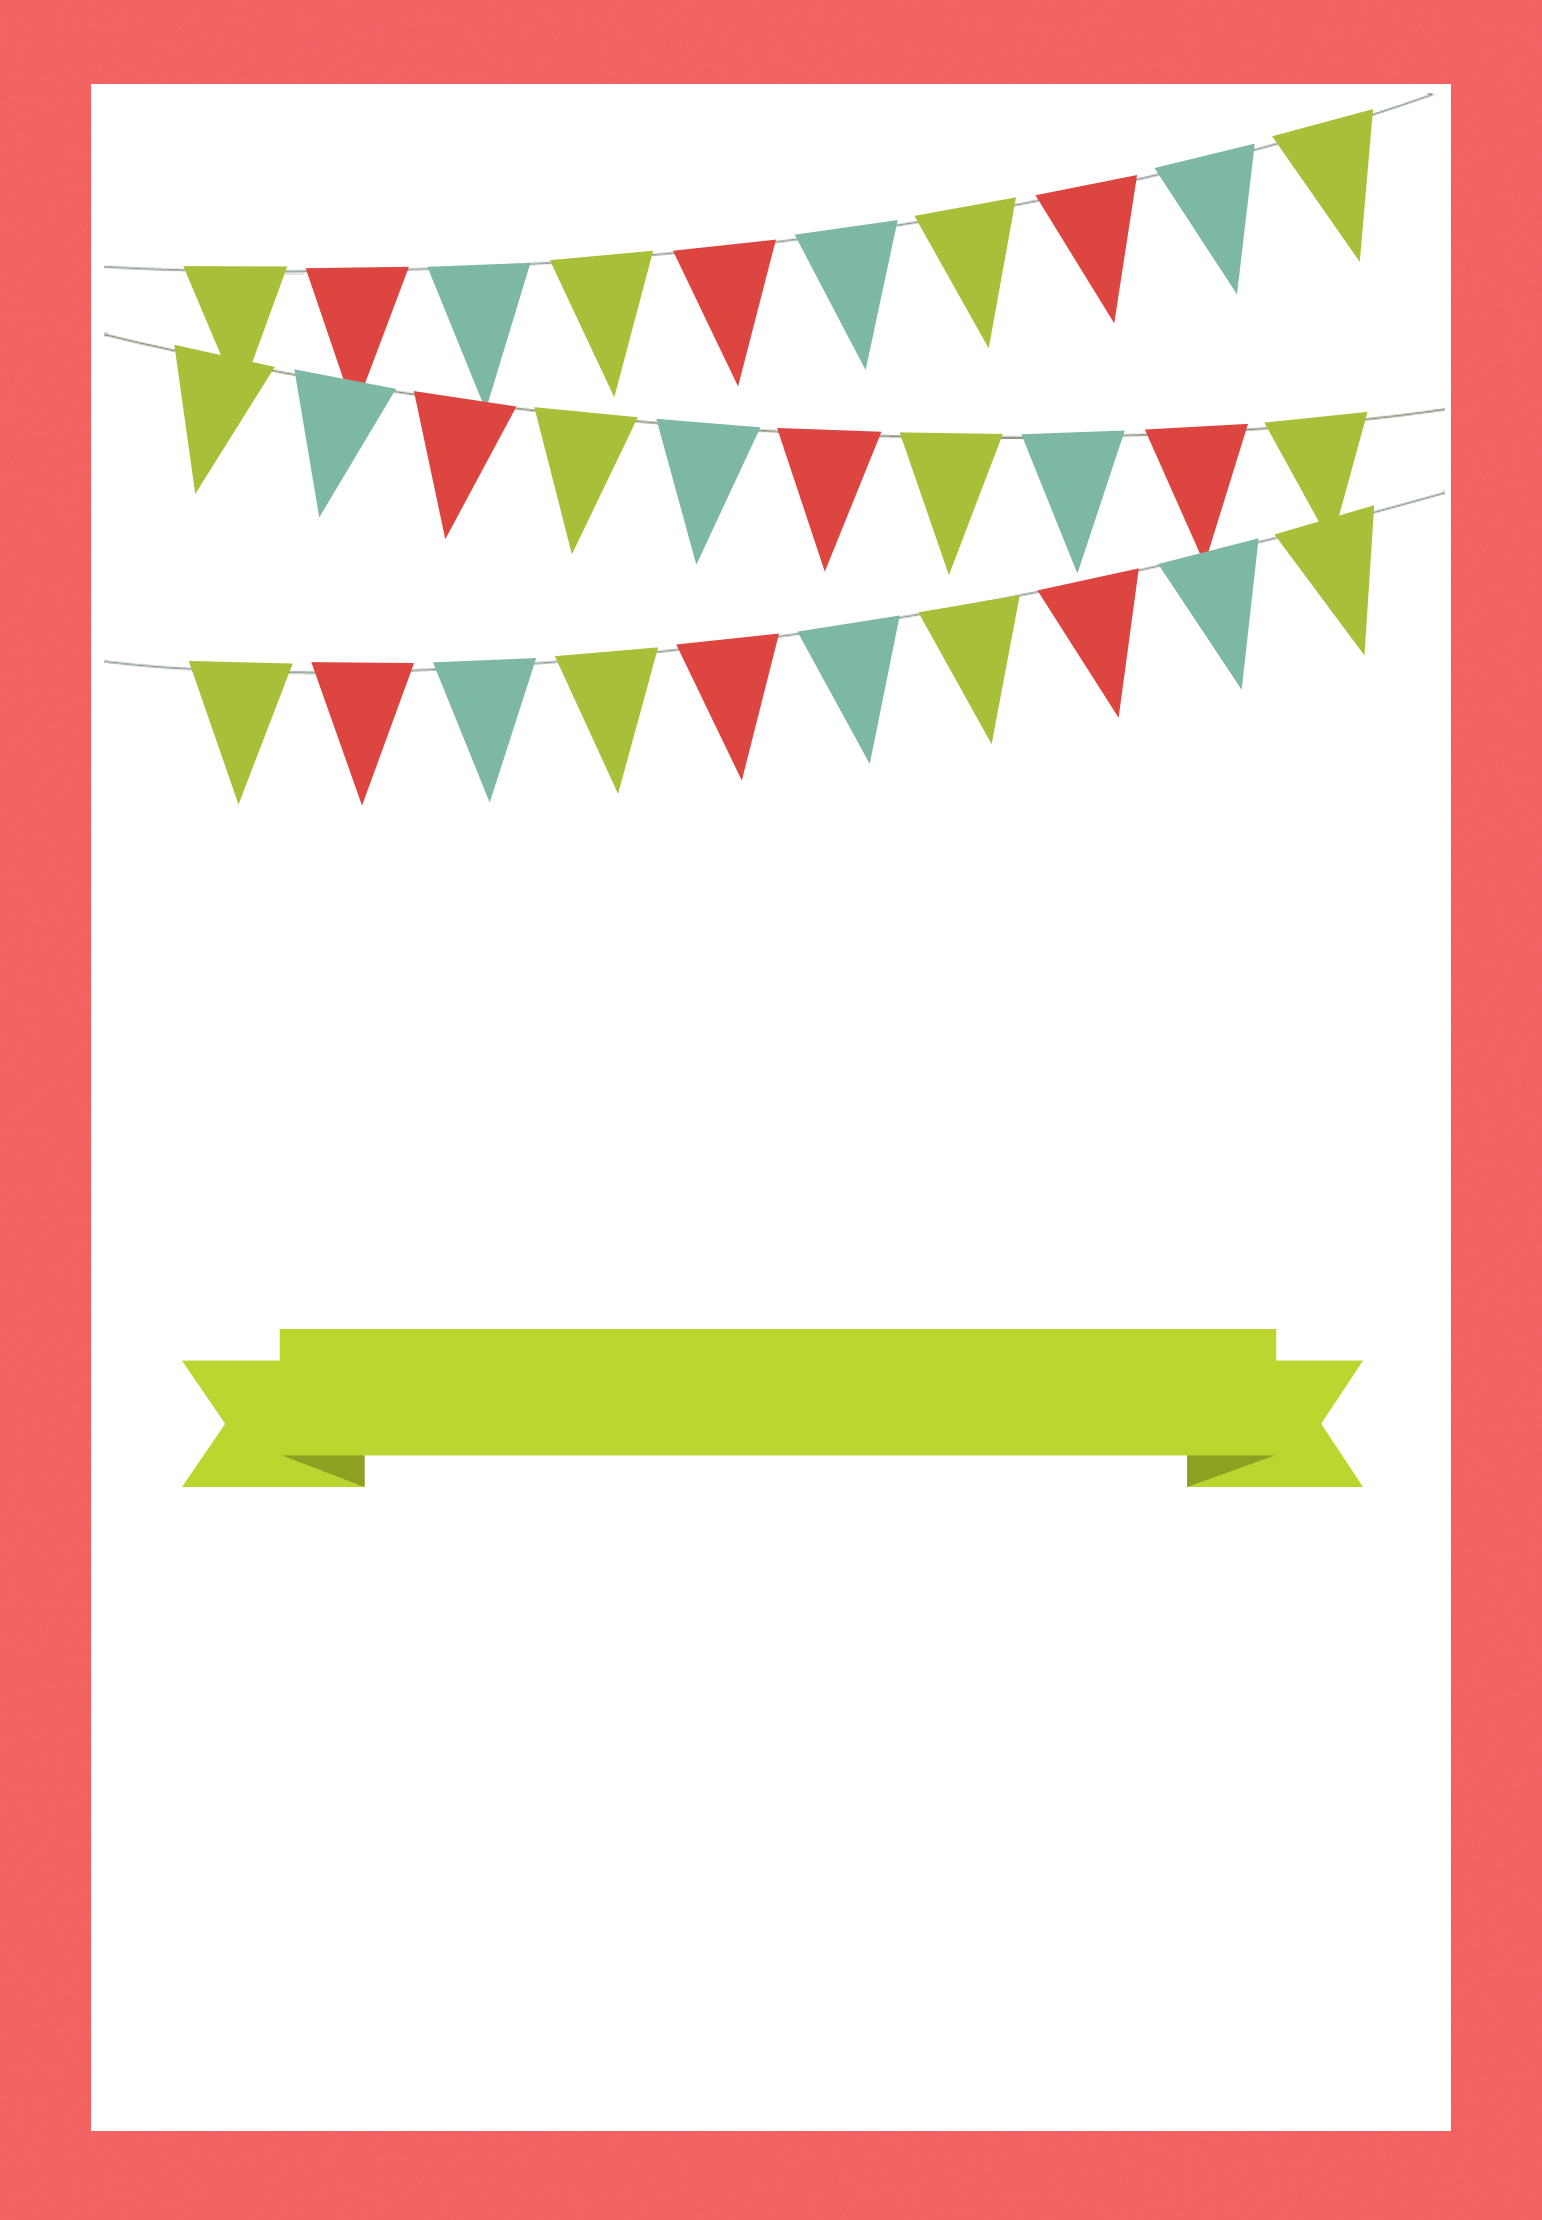 red pennants